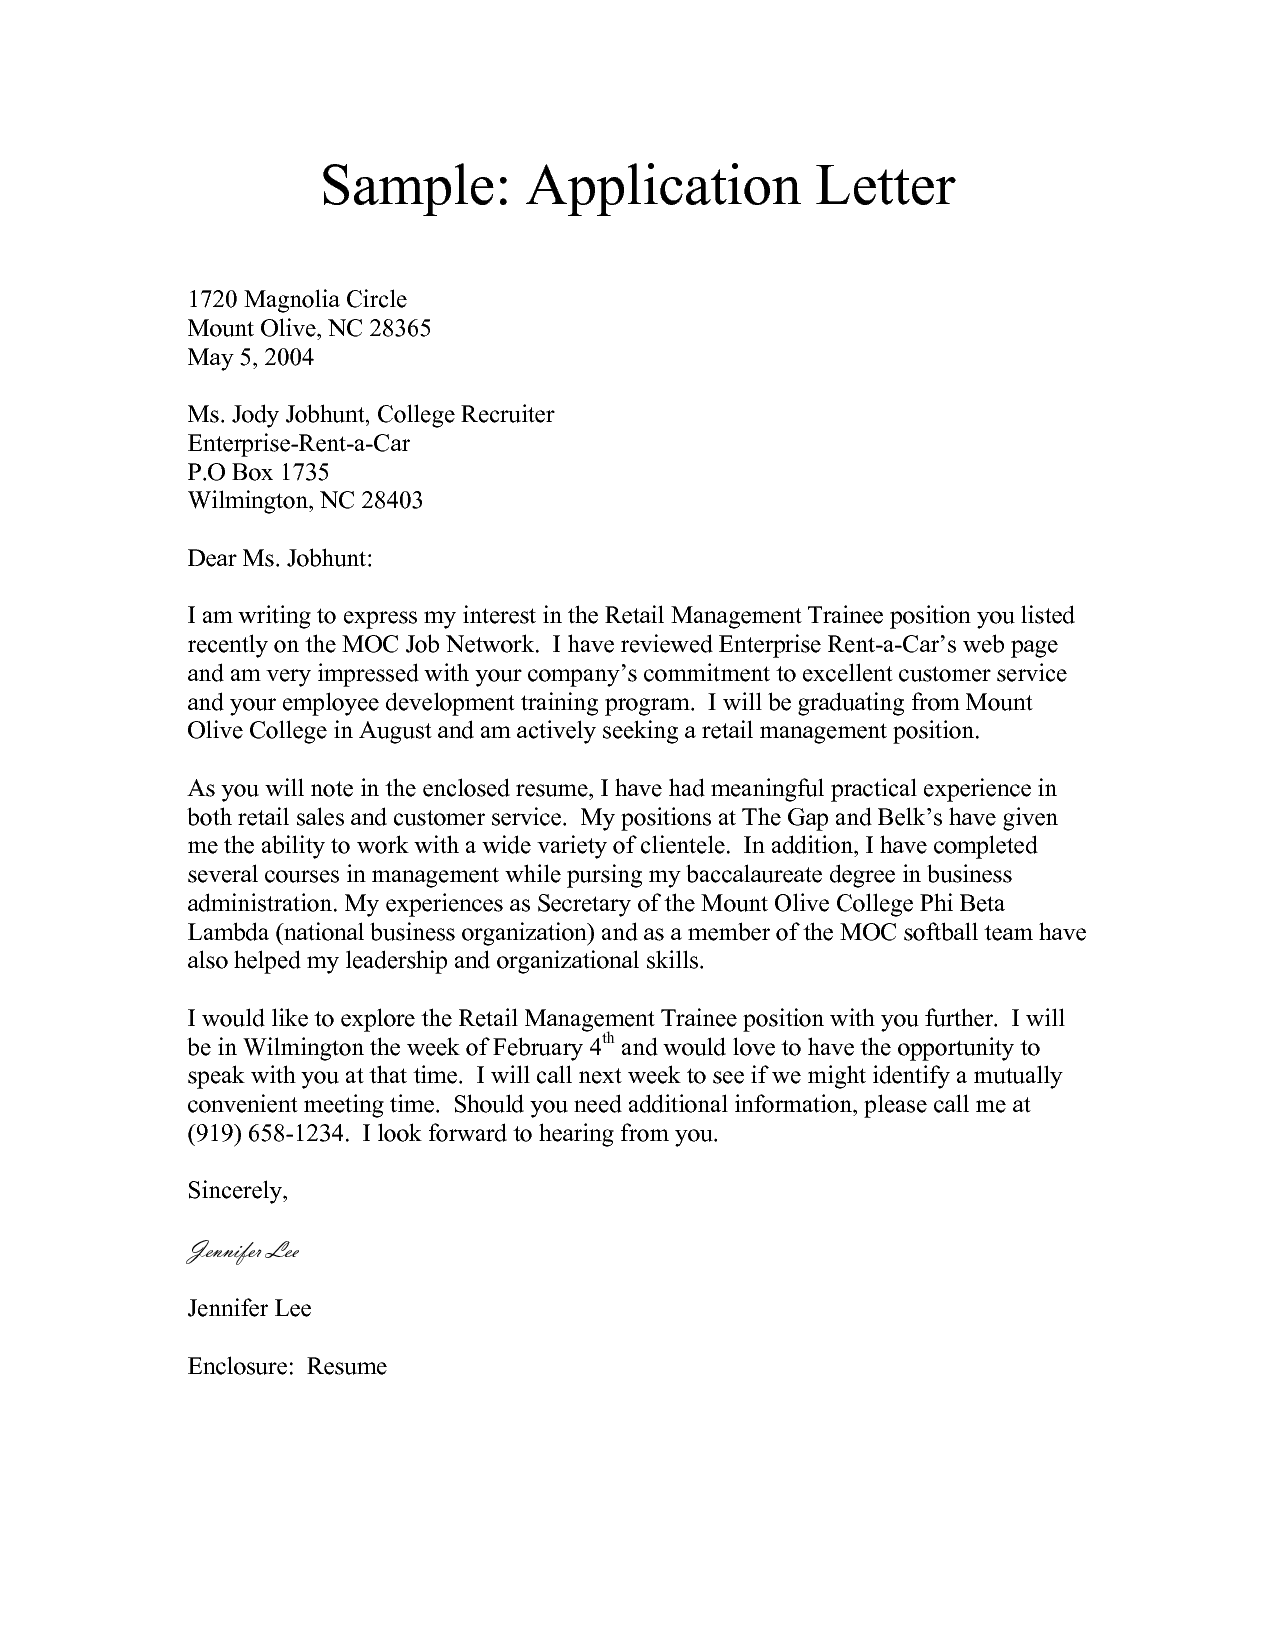 download free application letters using formal well written letter ...